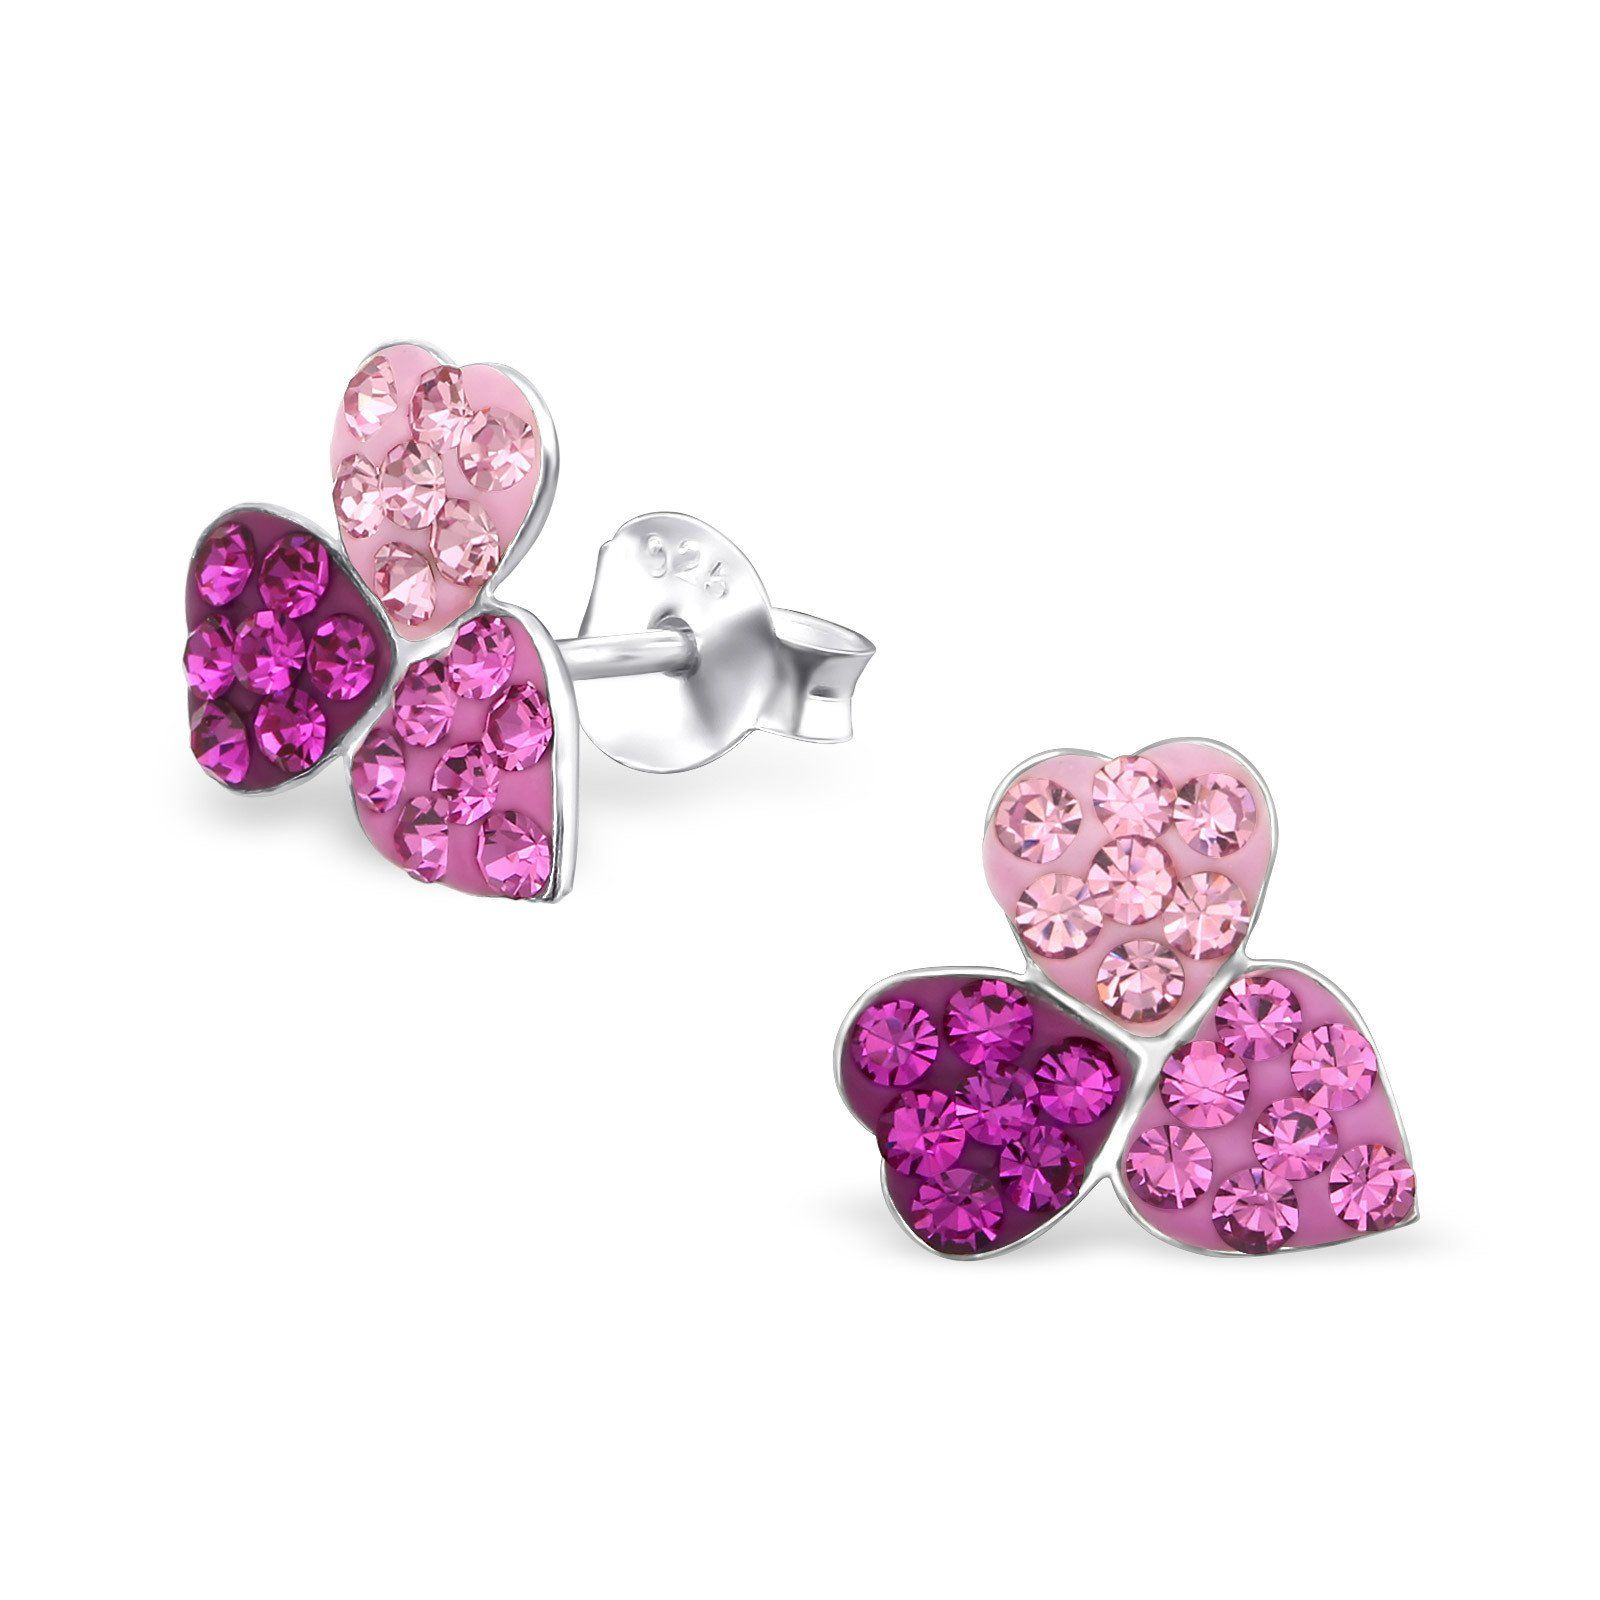 stud galleries real silver leaf earrings jackson fashion of shop tianguis national jewellery